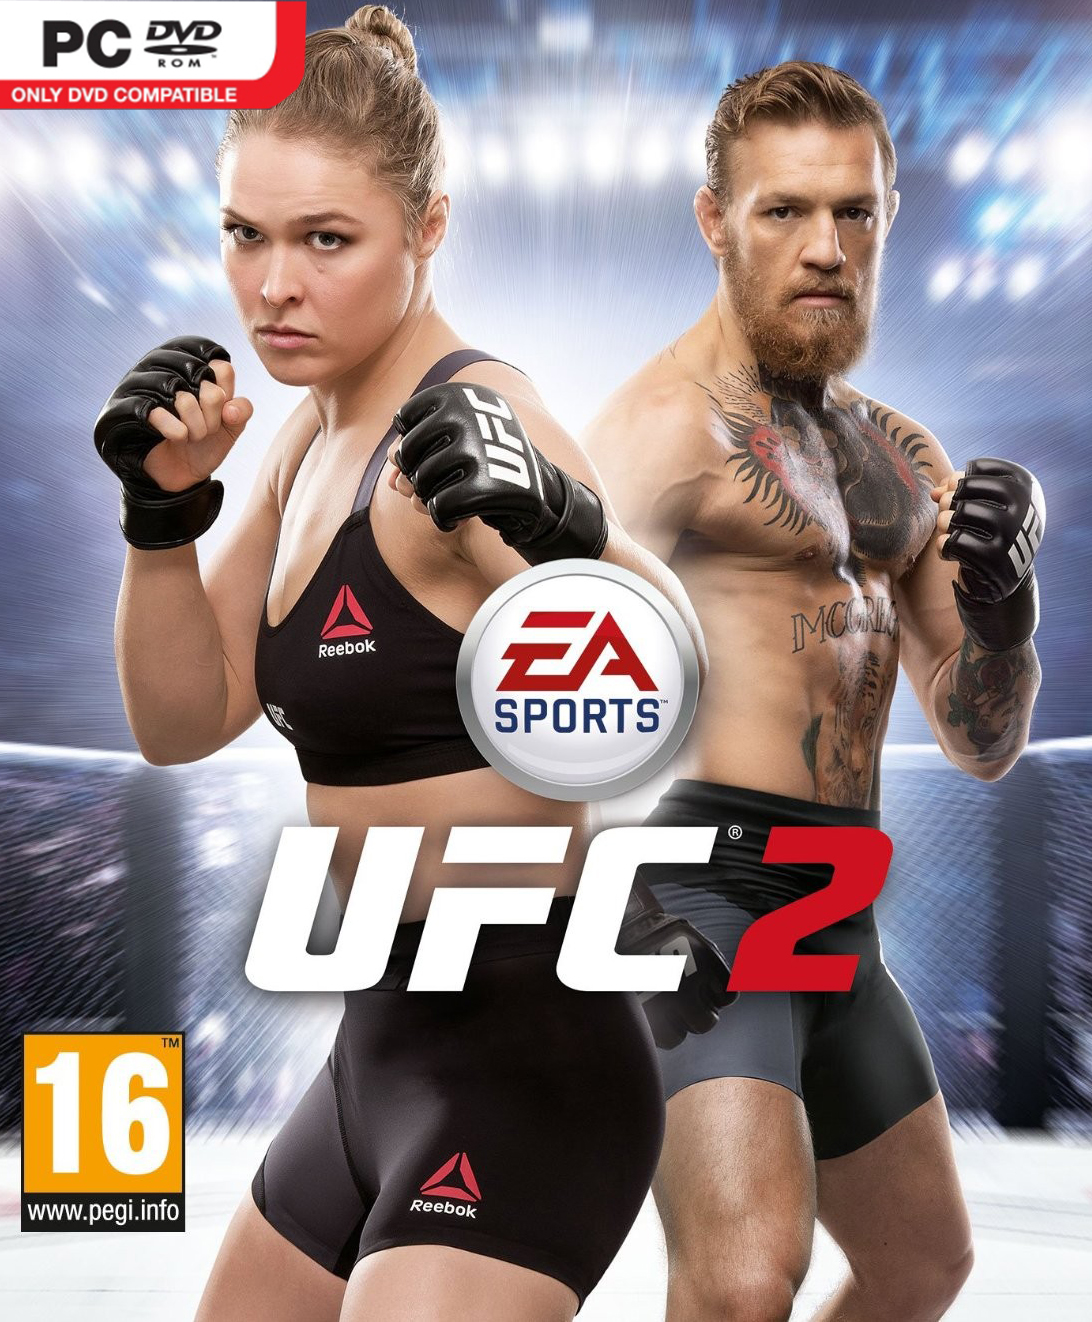 How to download ufc 2 pc (windows 7,8,10) youtube.